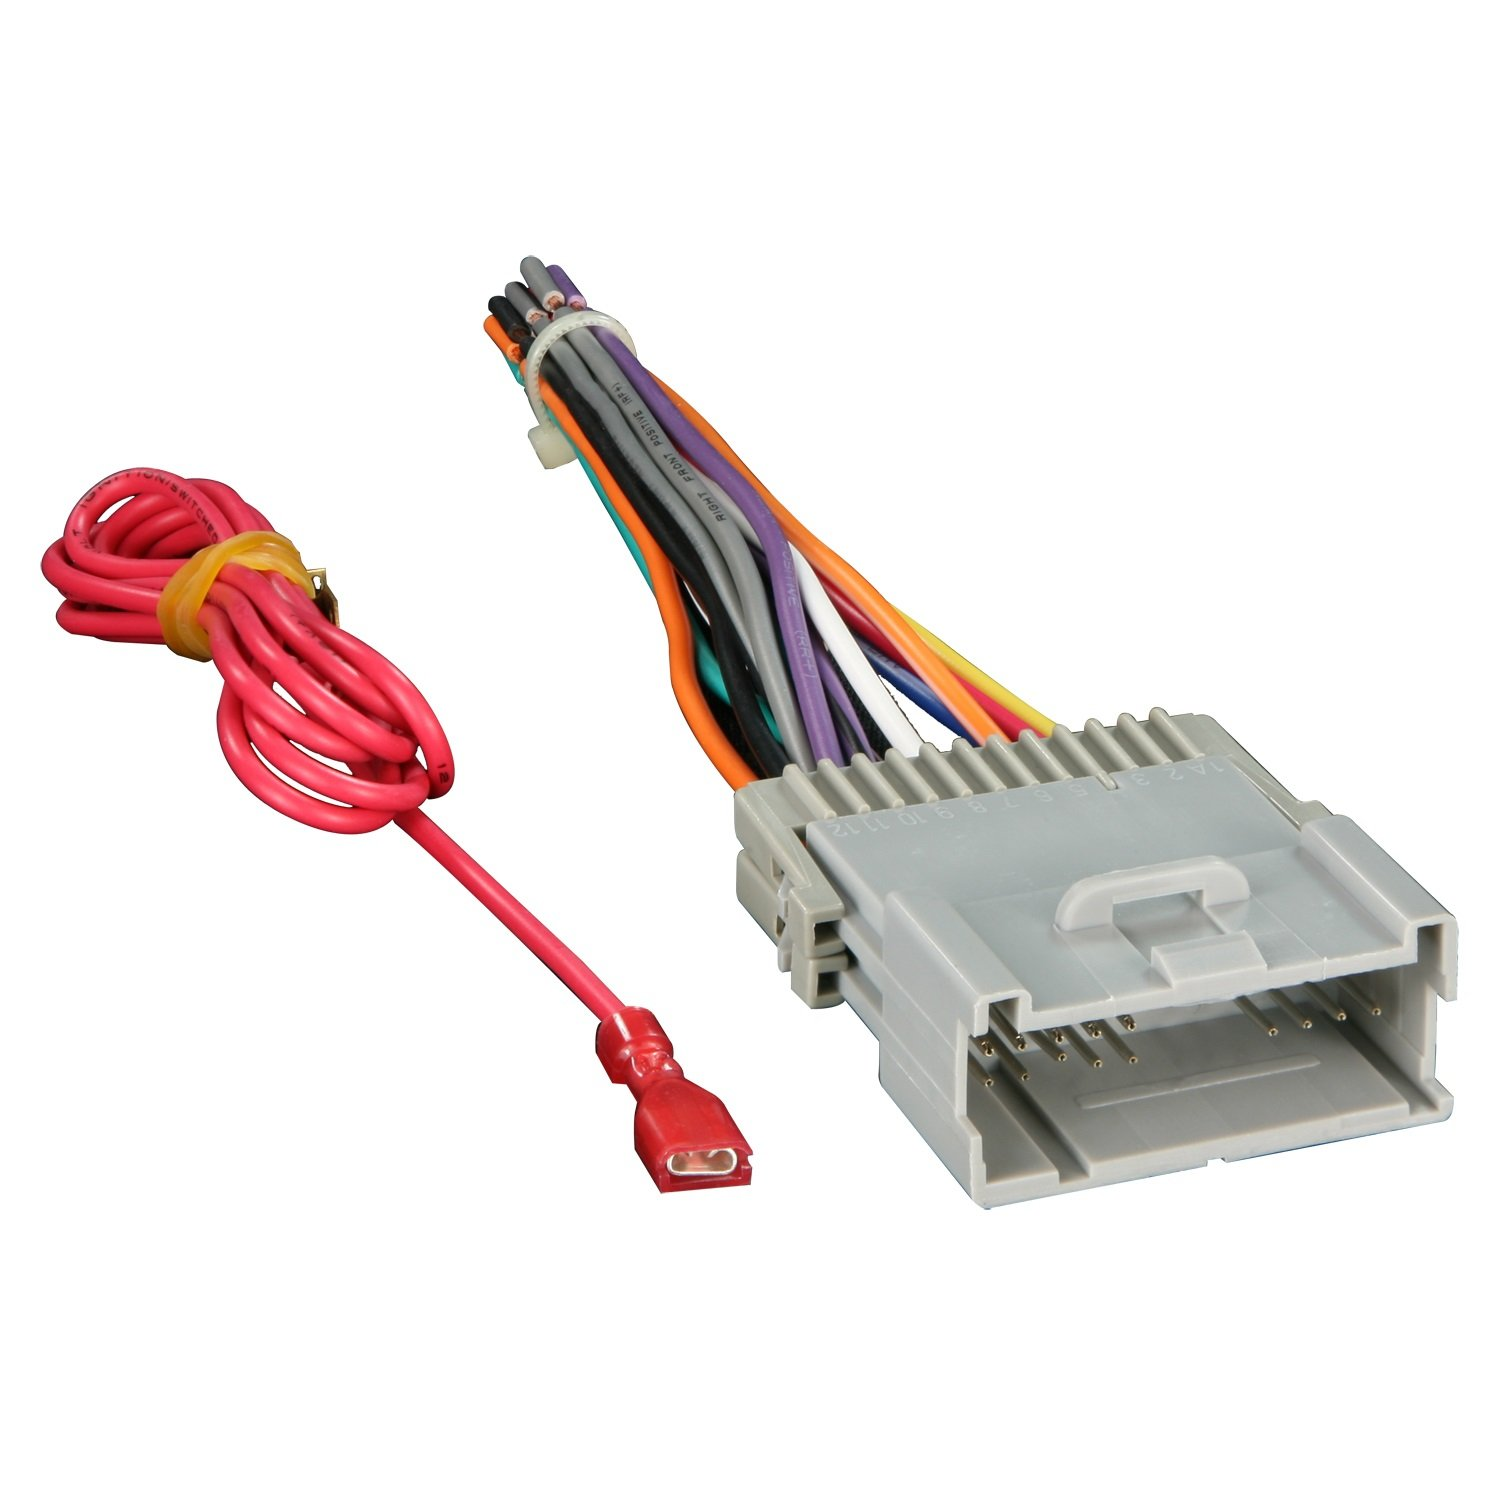 61eewxp9orL._SL1500_ amazon com metra 70 2003 radio wiring harness for gm 98 08 how to install wire harness car stereo at eliteediting.co